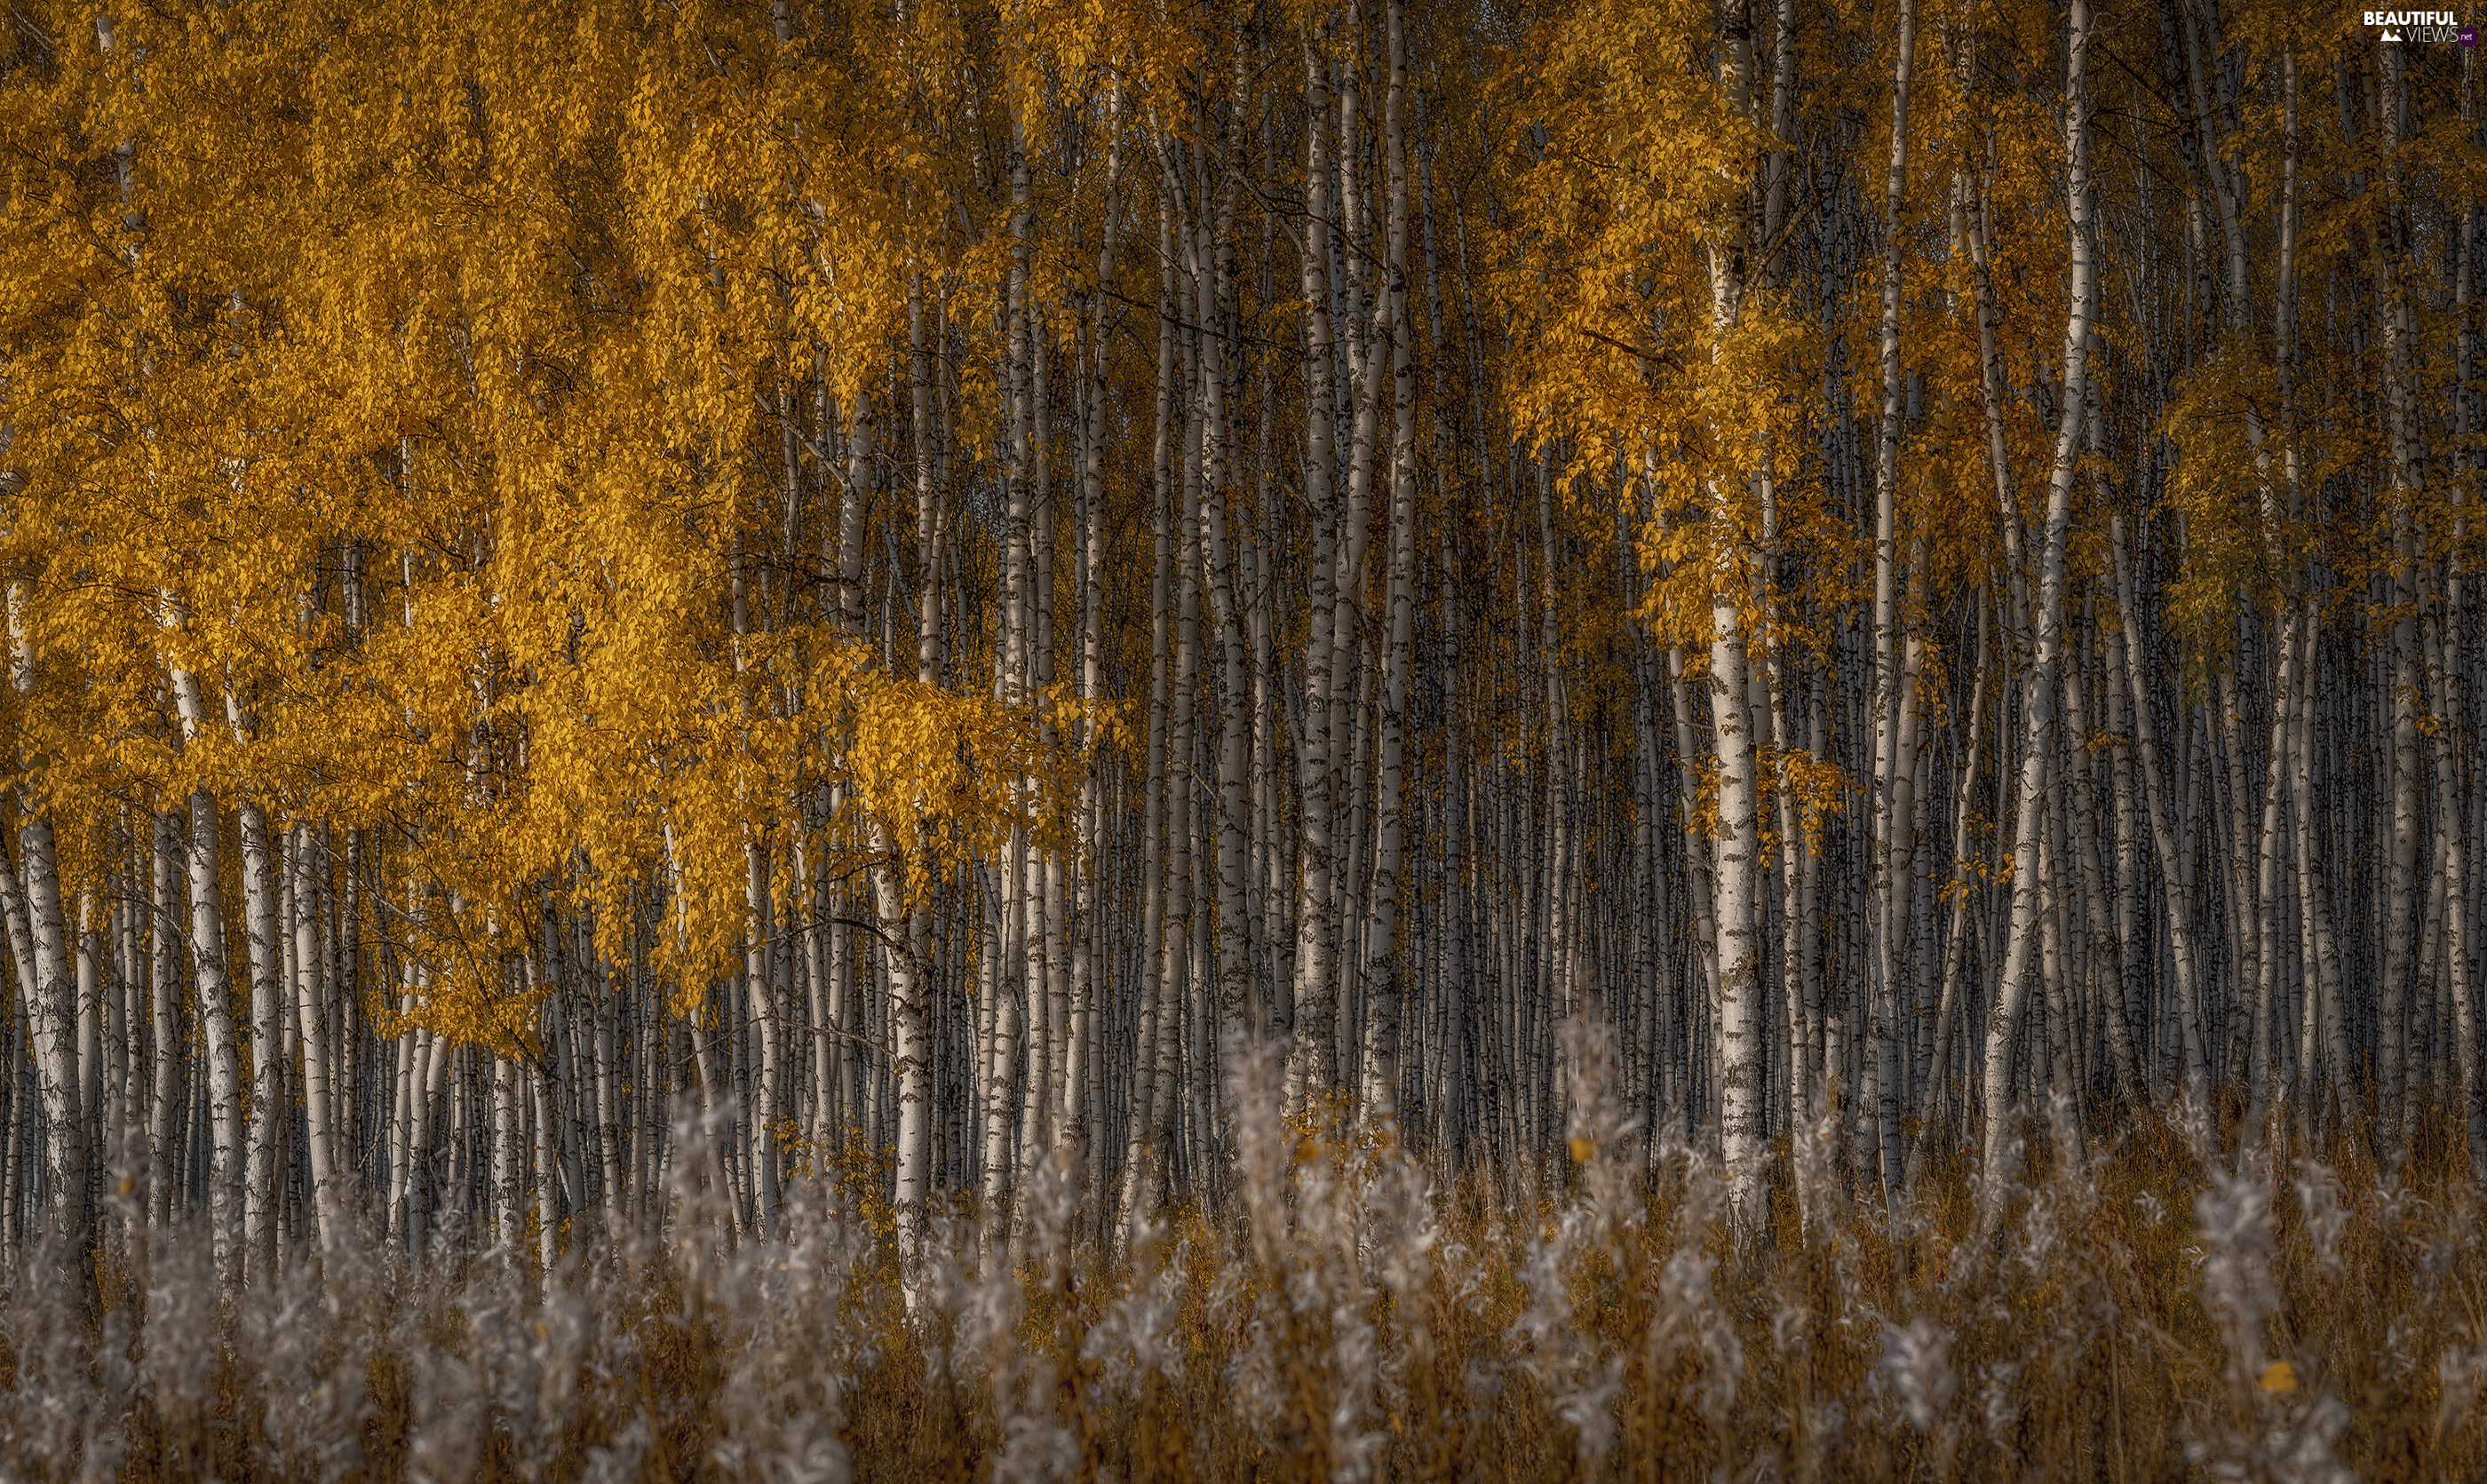 birch, autumn, trees, viewes, forest